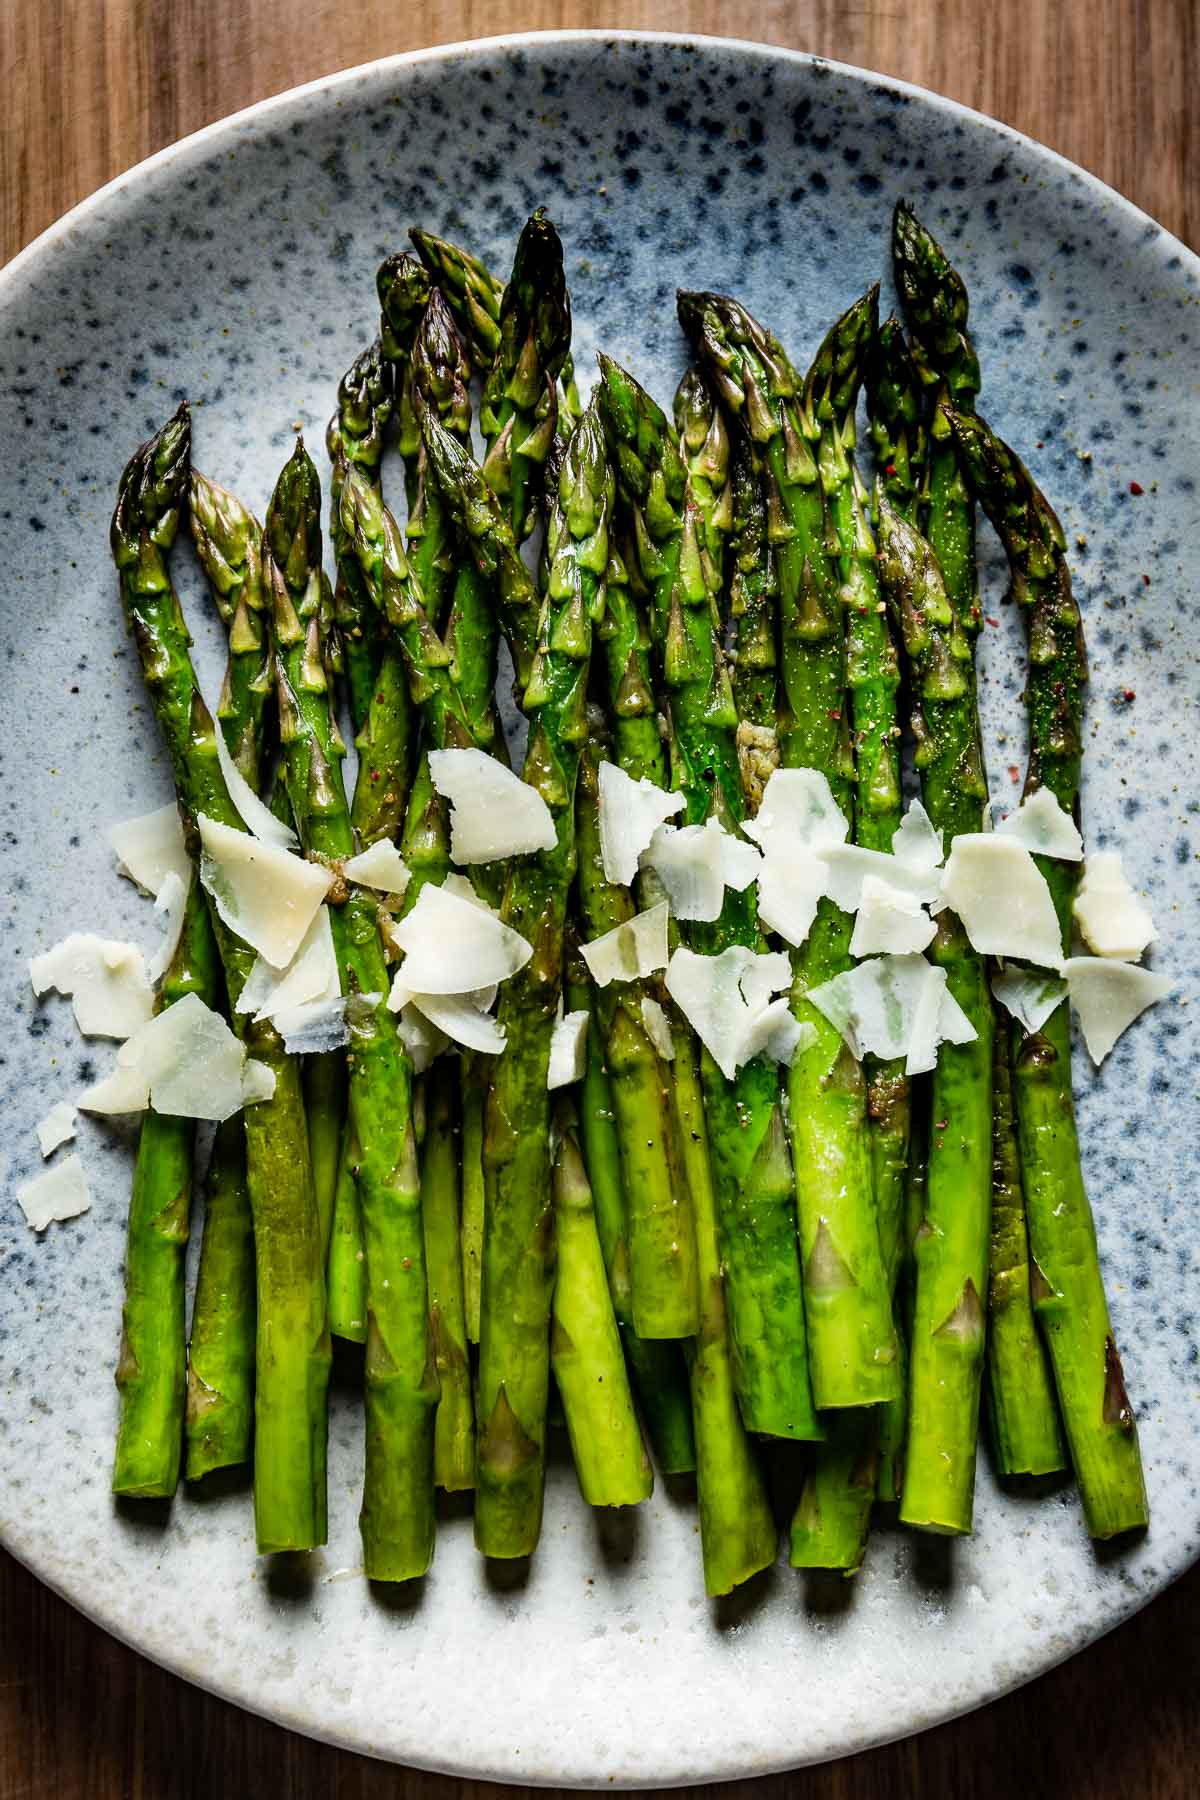 Sauteed Asparagus topped off with parmesan cheese on a plate